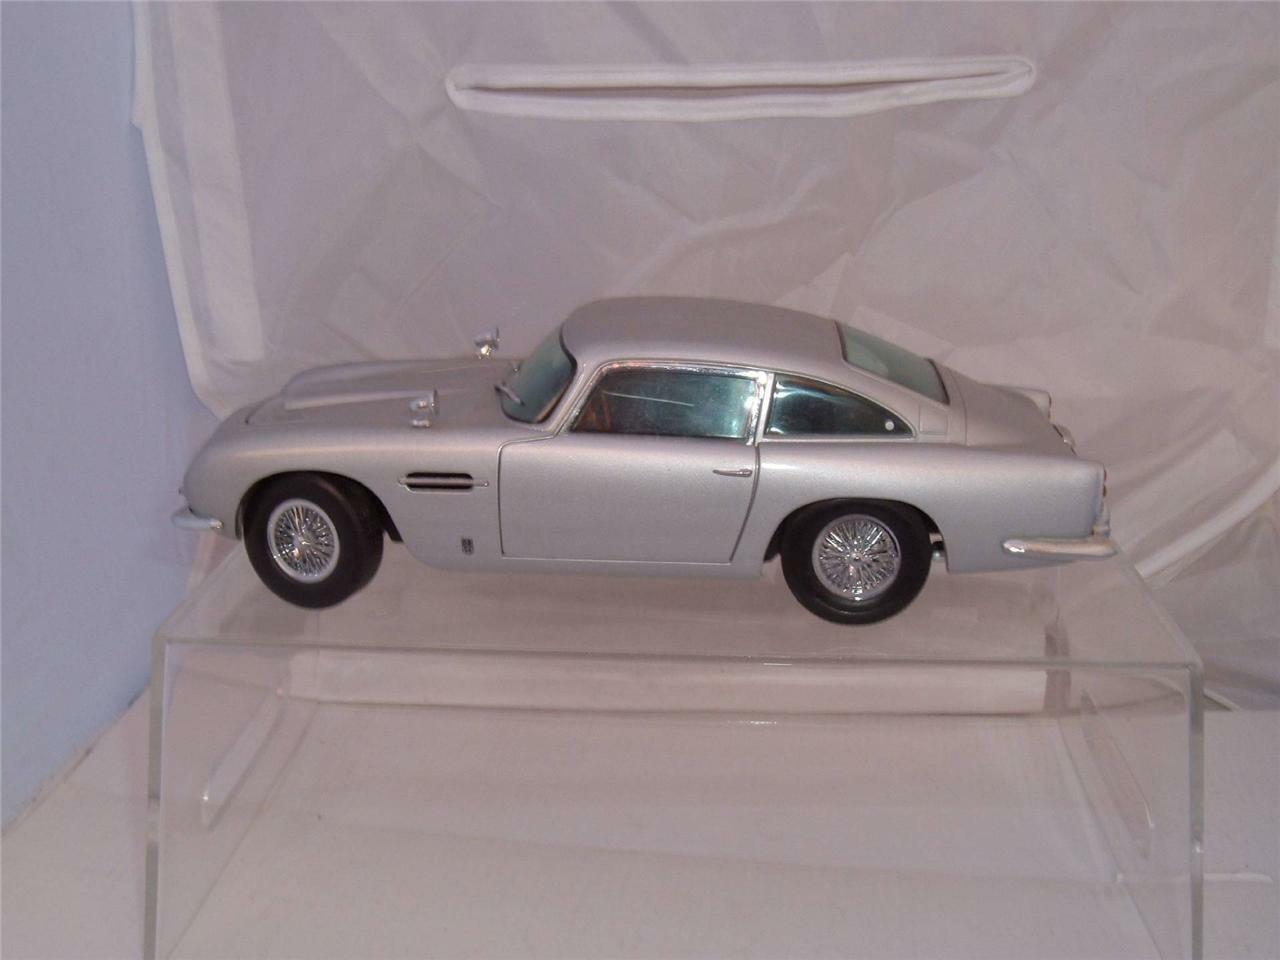 SUN STAR 1 18 SCALE 1963 ASTON MARTIN UNBOXED USED CONDITION PLEASE STUDY PICS